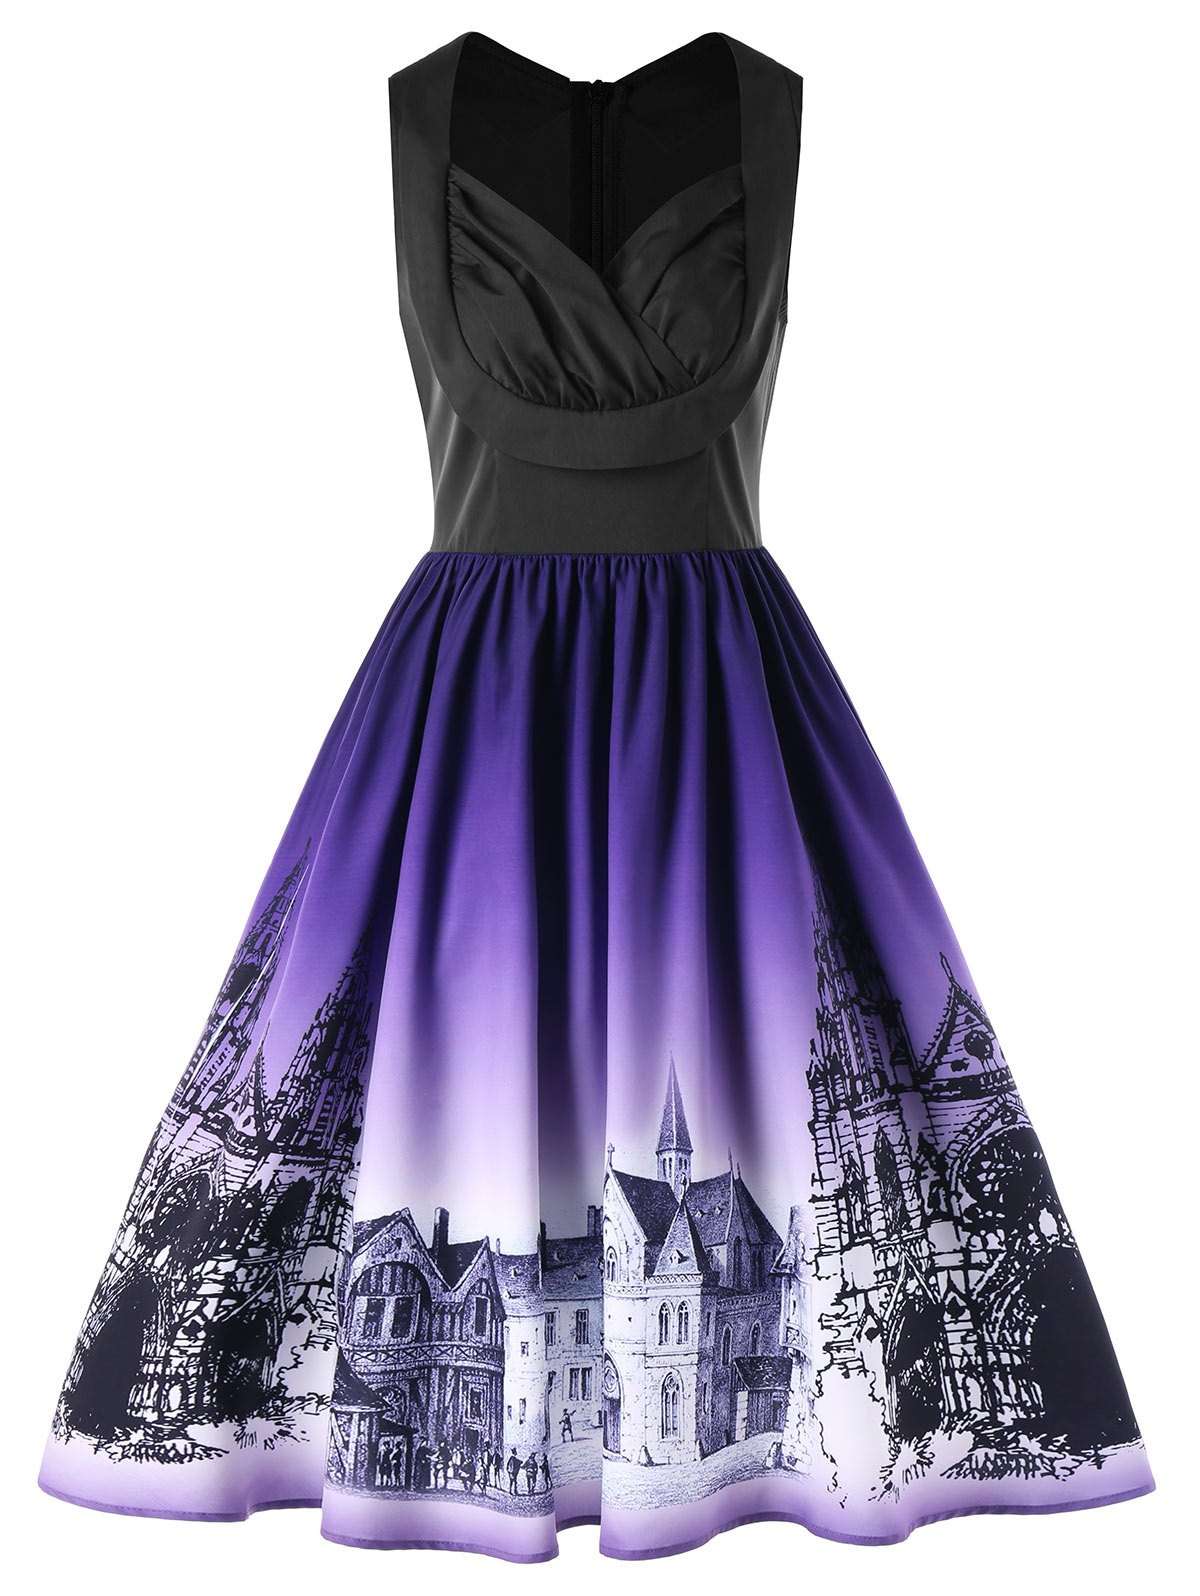 Retro Buildings Printed Ombre Sleeveless Flare Dress - COLORMIX 2XL